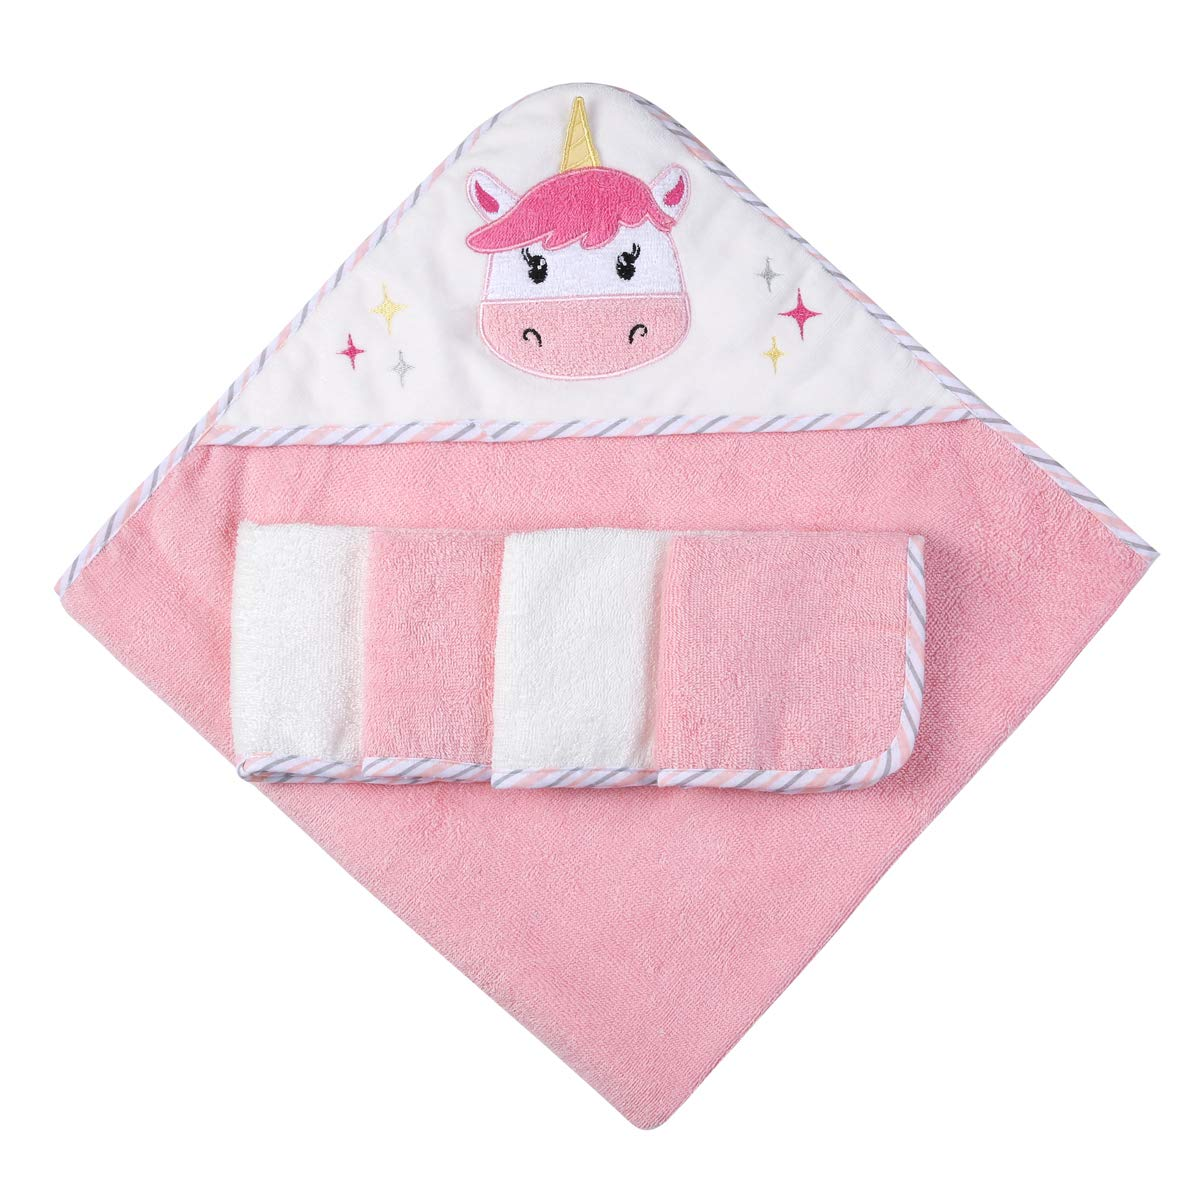 Ramees Baby online shopping Hooded Bath Towel and Financial sales sale Washcloths Pink Unico 5 Pack